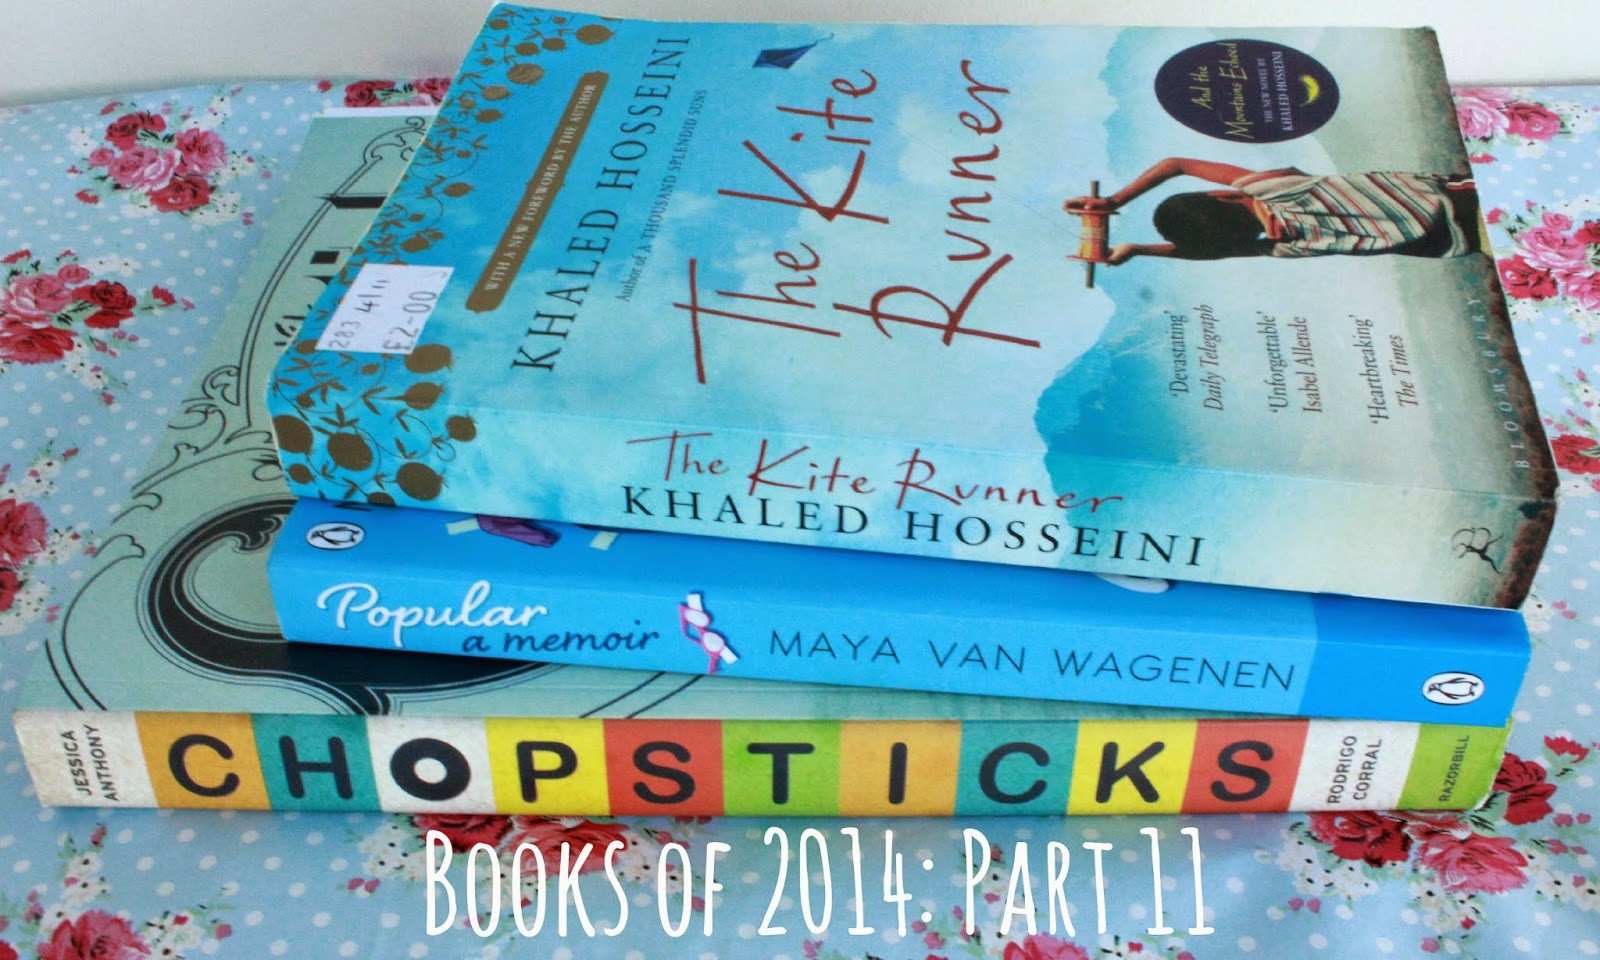 Books of 2014: part 11, the finale!